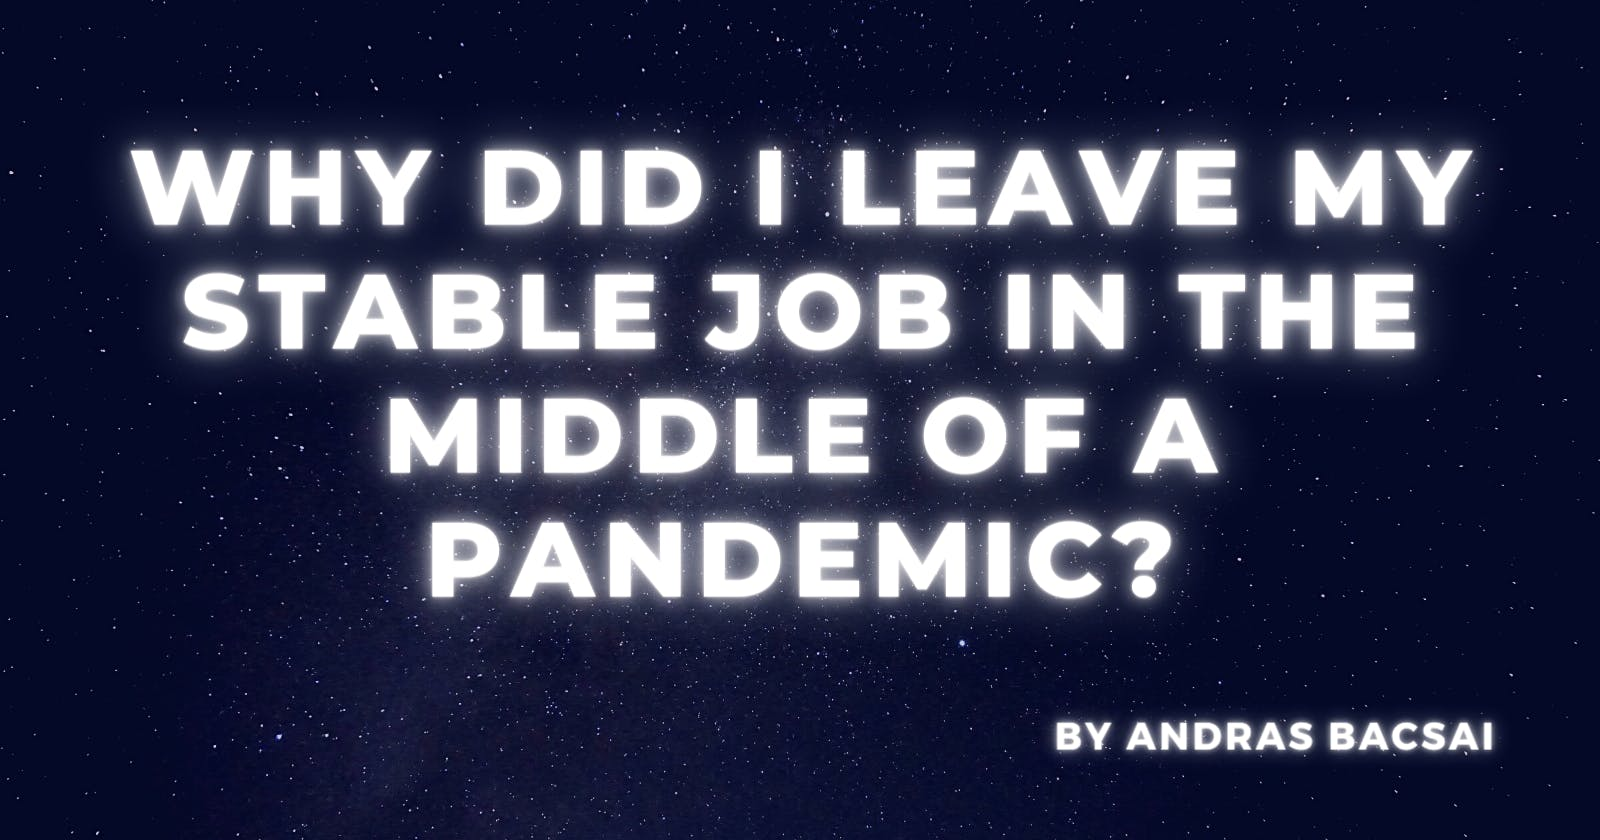 Why did I leave my stable job in the middle of a pandemic?